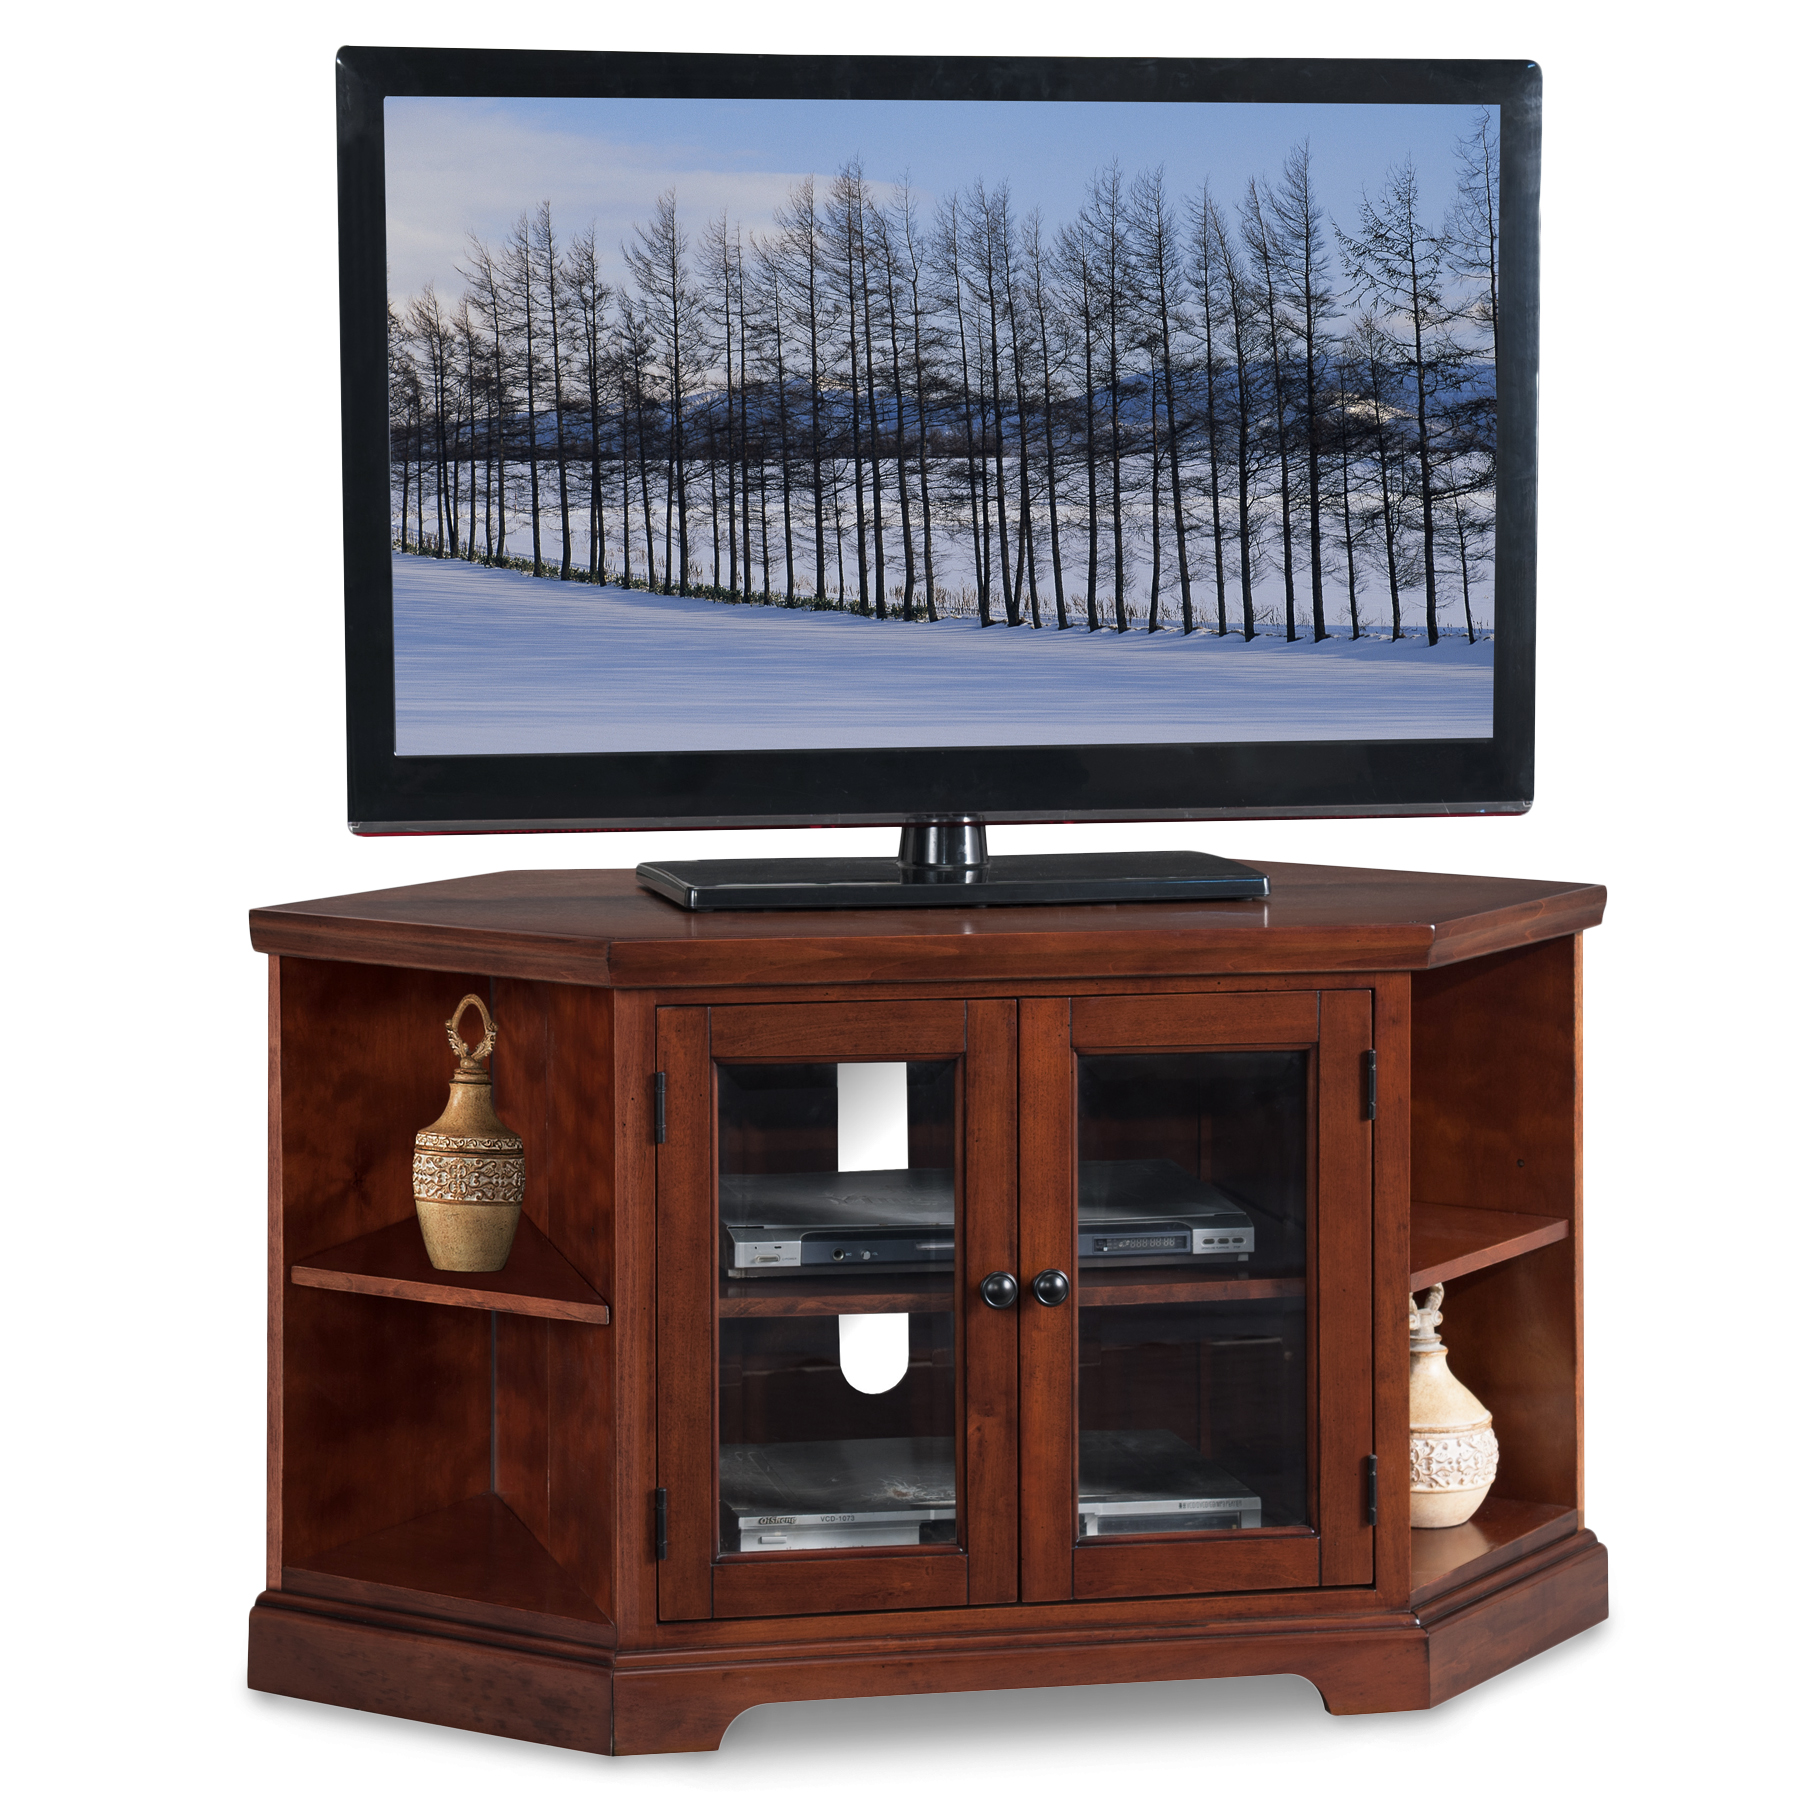 Leick Westwood 46 Corner Tv Stand With Bookcases